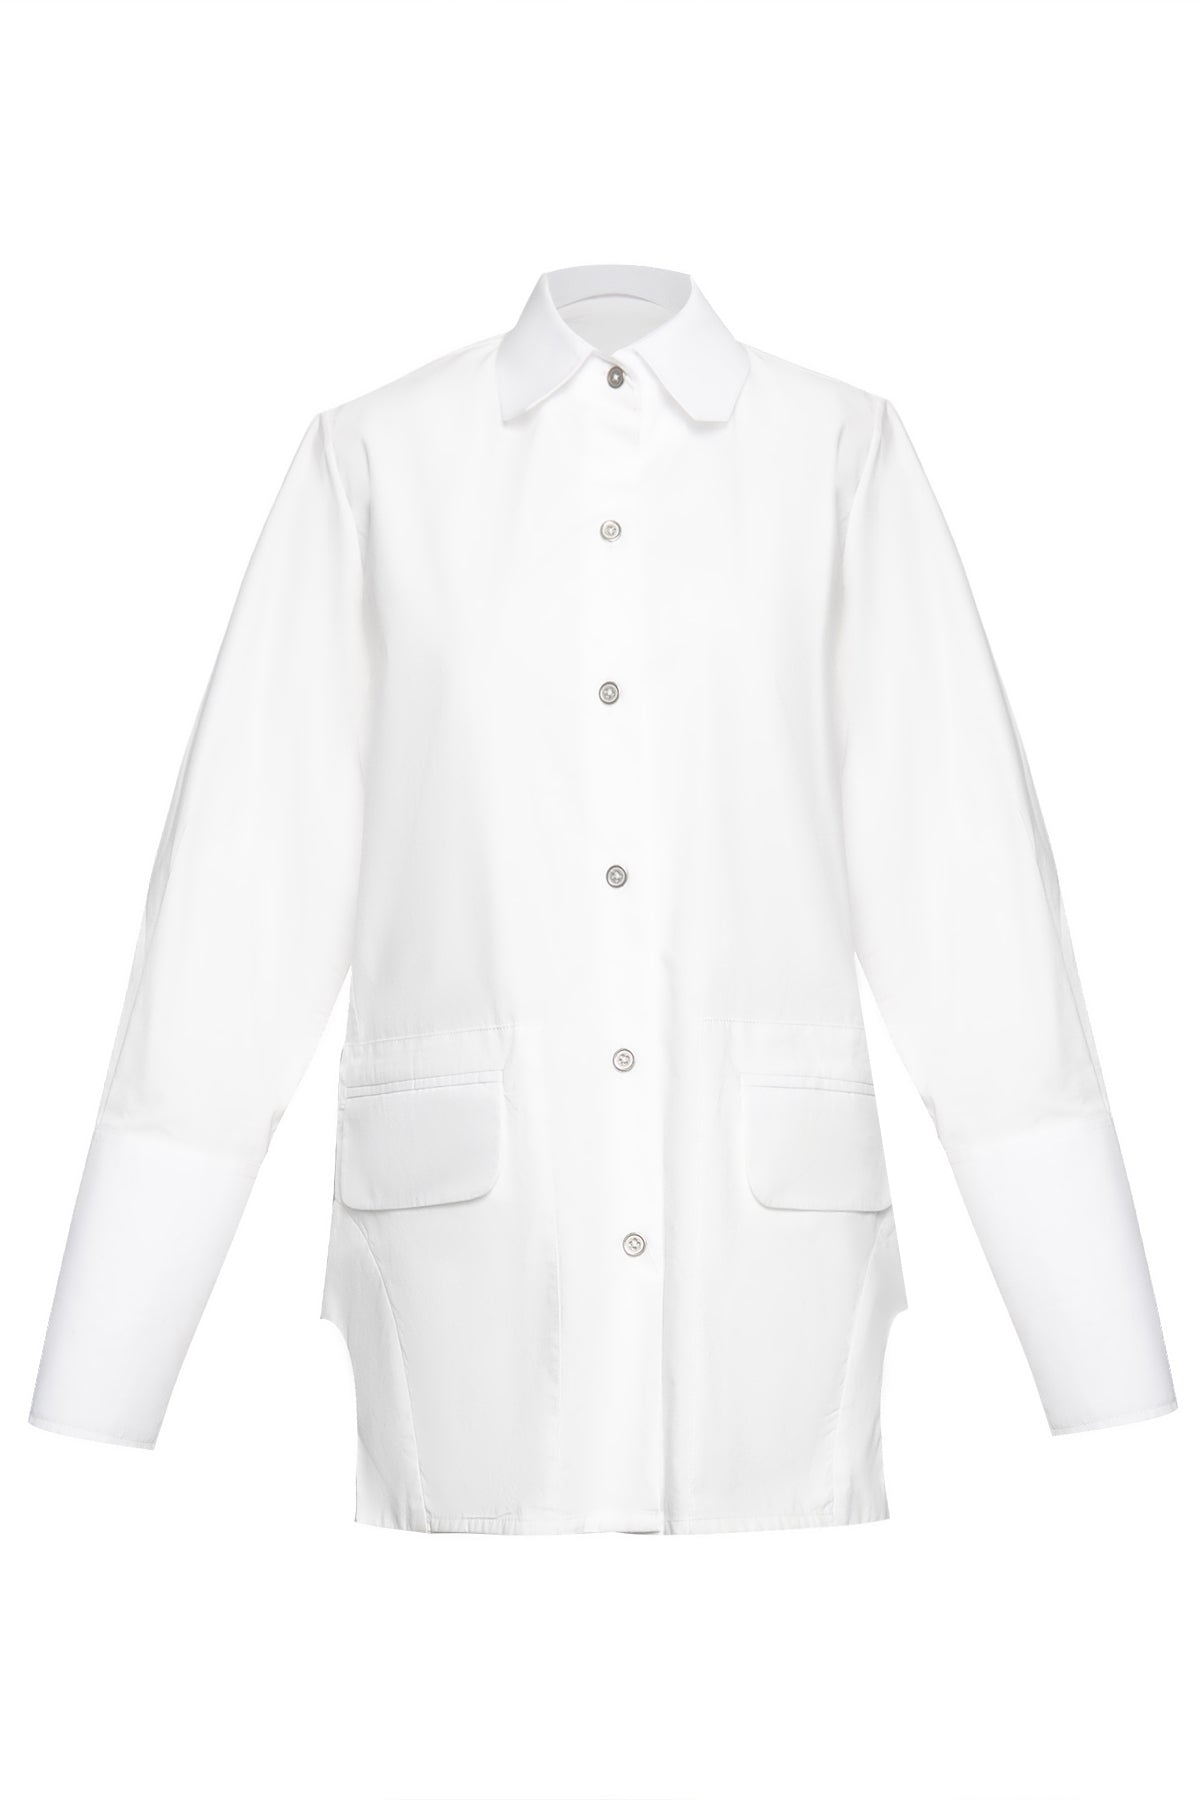 Double Pocket Curved Bottom Cotton Shirt in White